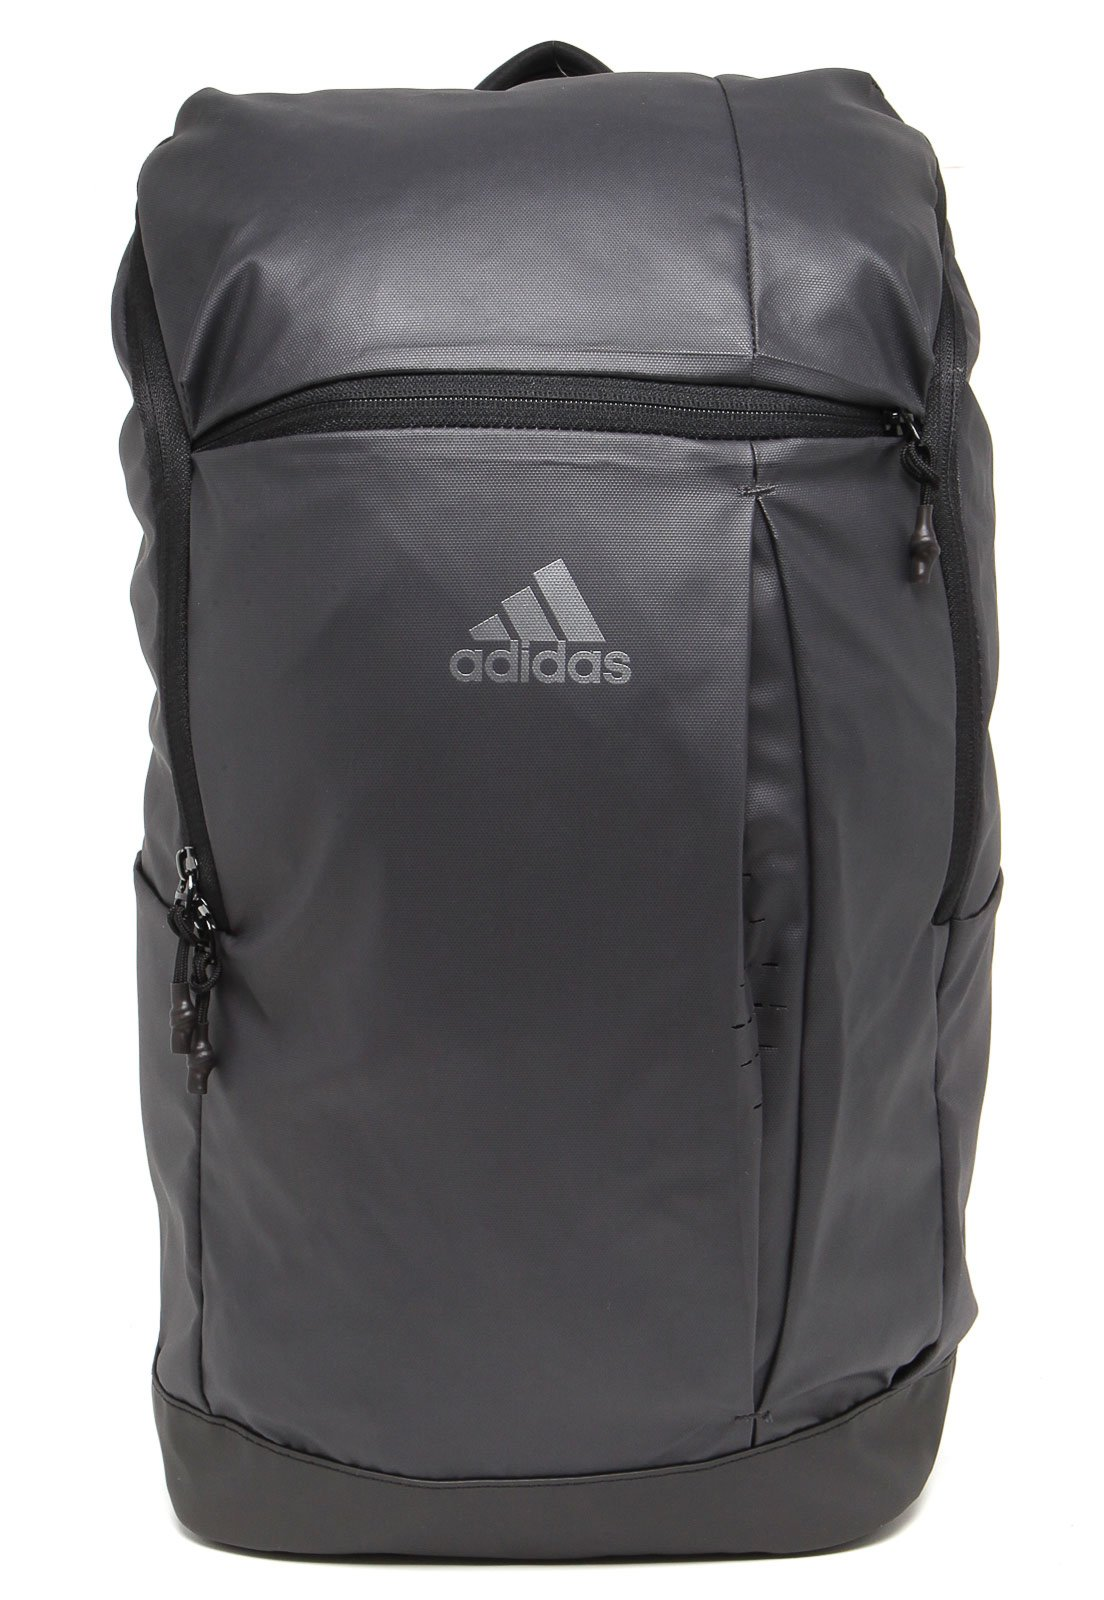 empujar bolita Imperio Inca  الطرح ليحجب أصلع mochila adidas training top - caallenblog.com